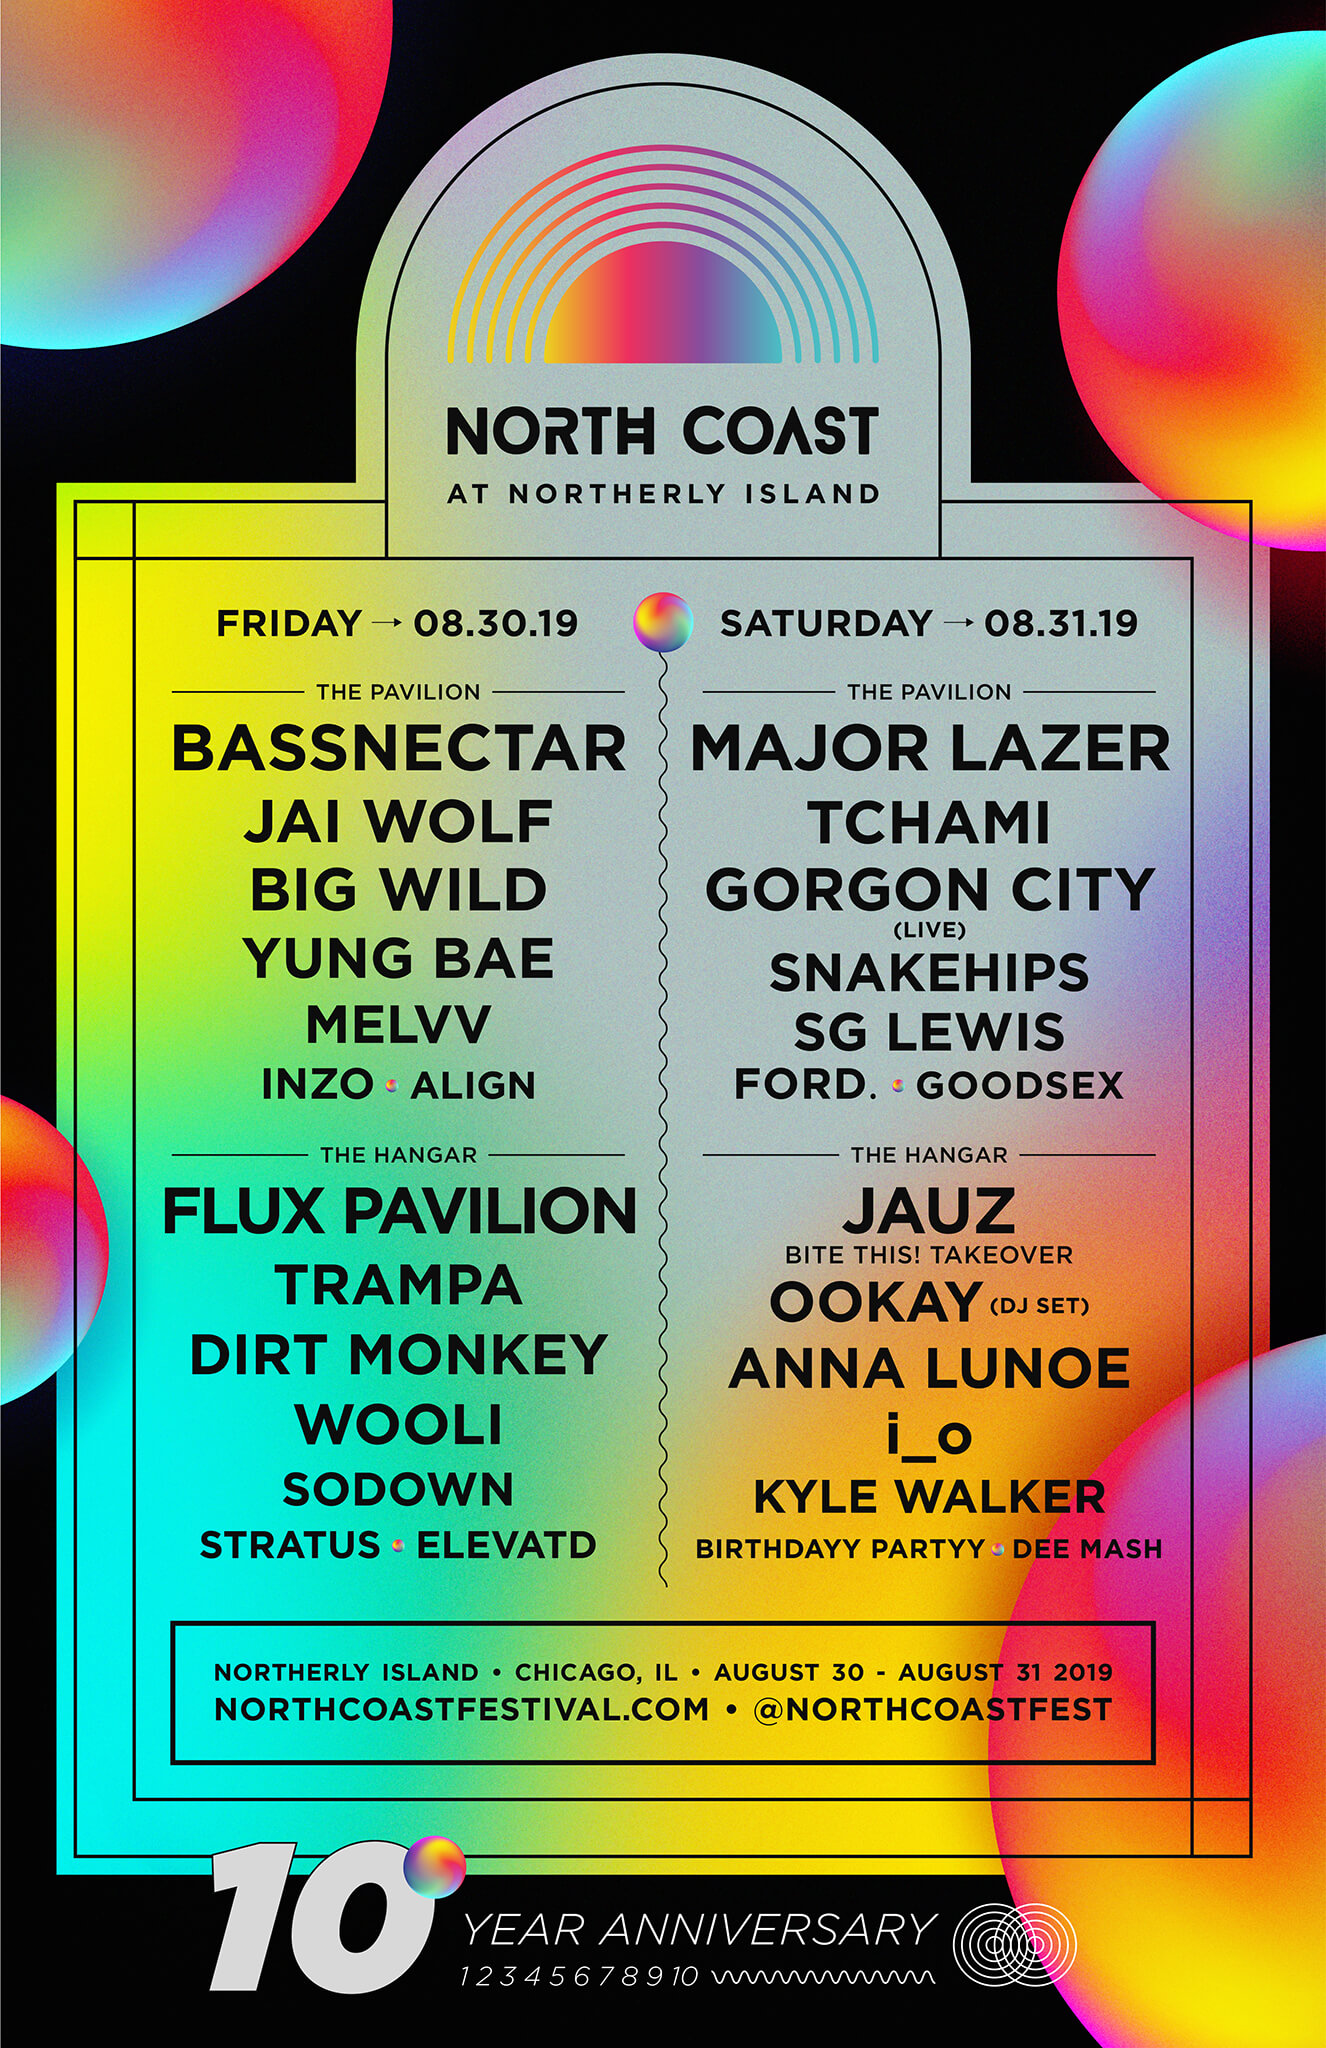 North Coast at Northerly Island will take place August 30th and August 31st, 2019 at Huntington Bank Pavilion at Northerly Island, located on the lakefront in downtown Chicago on Museum Campus and adjacent to Soldier Field.   Address: Huntington Bank Pavilion at Northerly Island  1300 S Linn White Dr Chicago, IL 60605   Festival Hours:  Friday, August 30th, 2019: 2:30 PM – 11:00 PM Saturday, August 31st, 2019: 2:30 PM – 11:00 PM  This festival is all ages.  DOWNLOAD RADIATE  Download the app  Radiate  to start meeting the rest of your North Coast fam, and get the latest event info. #SharingIsCaring :)      NCMF Afterparty: Flux Pavilion at Concord Music Hall    Concord Music Hall    Get Tickets      Official North Coast After Parties with INZO    House of Blues Chicago    Get Tickets      North Coast Aftershow - DIPLO    PRYSM Nightclub    Get Tickets      NCMF Afterparty [Day 2]: Artist TBD    PRYSM Nightclub    Interested      NCMF Afterparty: Tchami at Concord Music Hall    Concord Music Hall    Get Tickets      Official North Coast After Parties with GORGON CITY    House of Blues Chicago    Get Tickets      NCMF Afterparty: JAUZ at Concord Music Hall    Concord Music Hall    Get Tickets